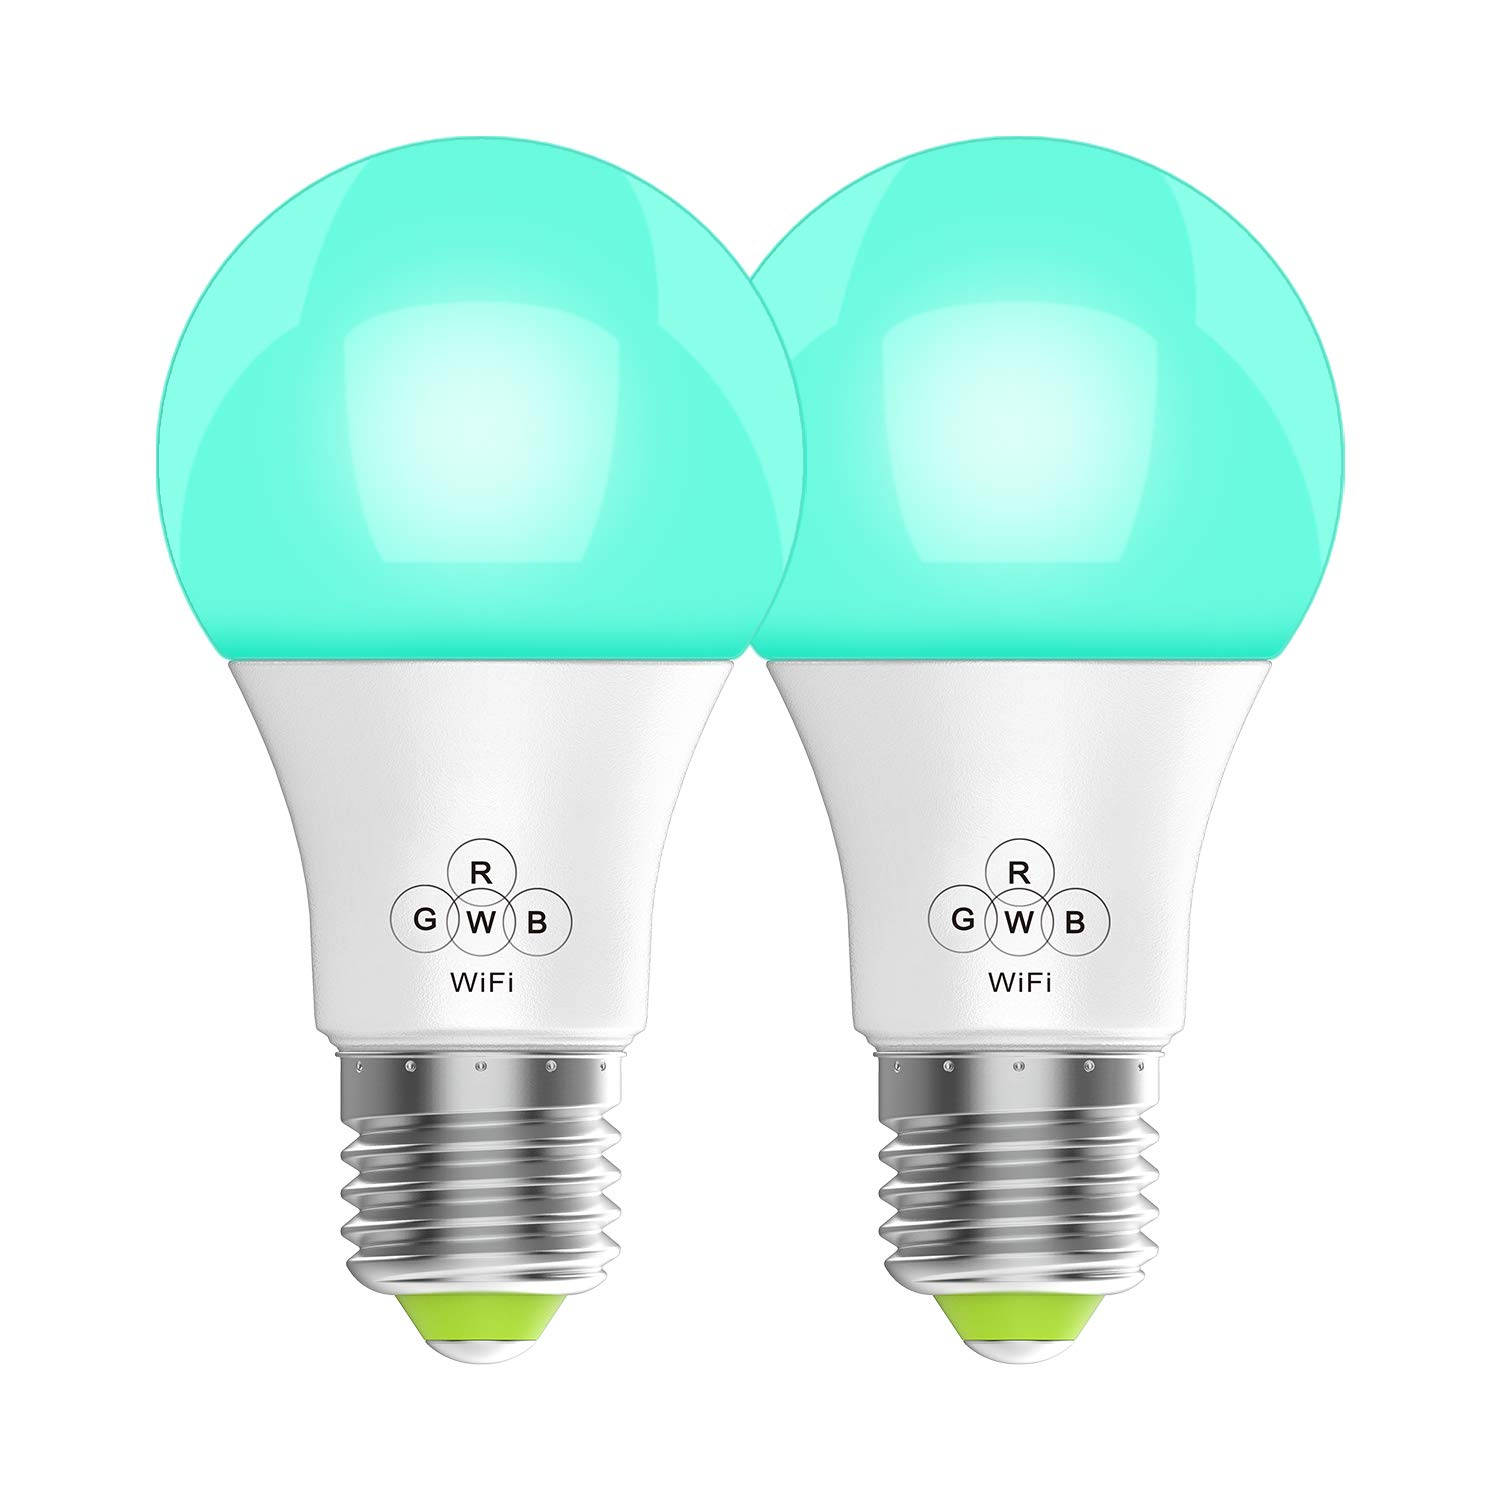 Svipear LED WiFi Smart Lights Bulb, Compatible with Alexa and Google Assistant and IFTTT,e27 a19 RGBW Edison Bulb, No Hub Required, Music Mode,Sunrise, Sunset Mode (2 Pack)